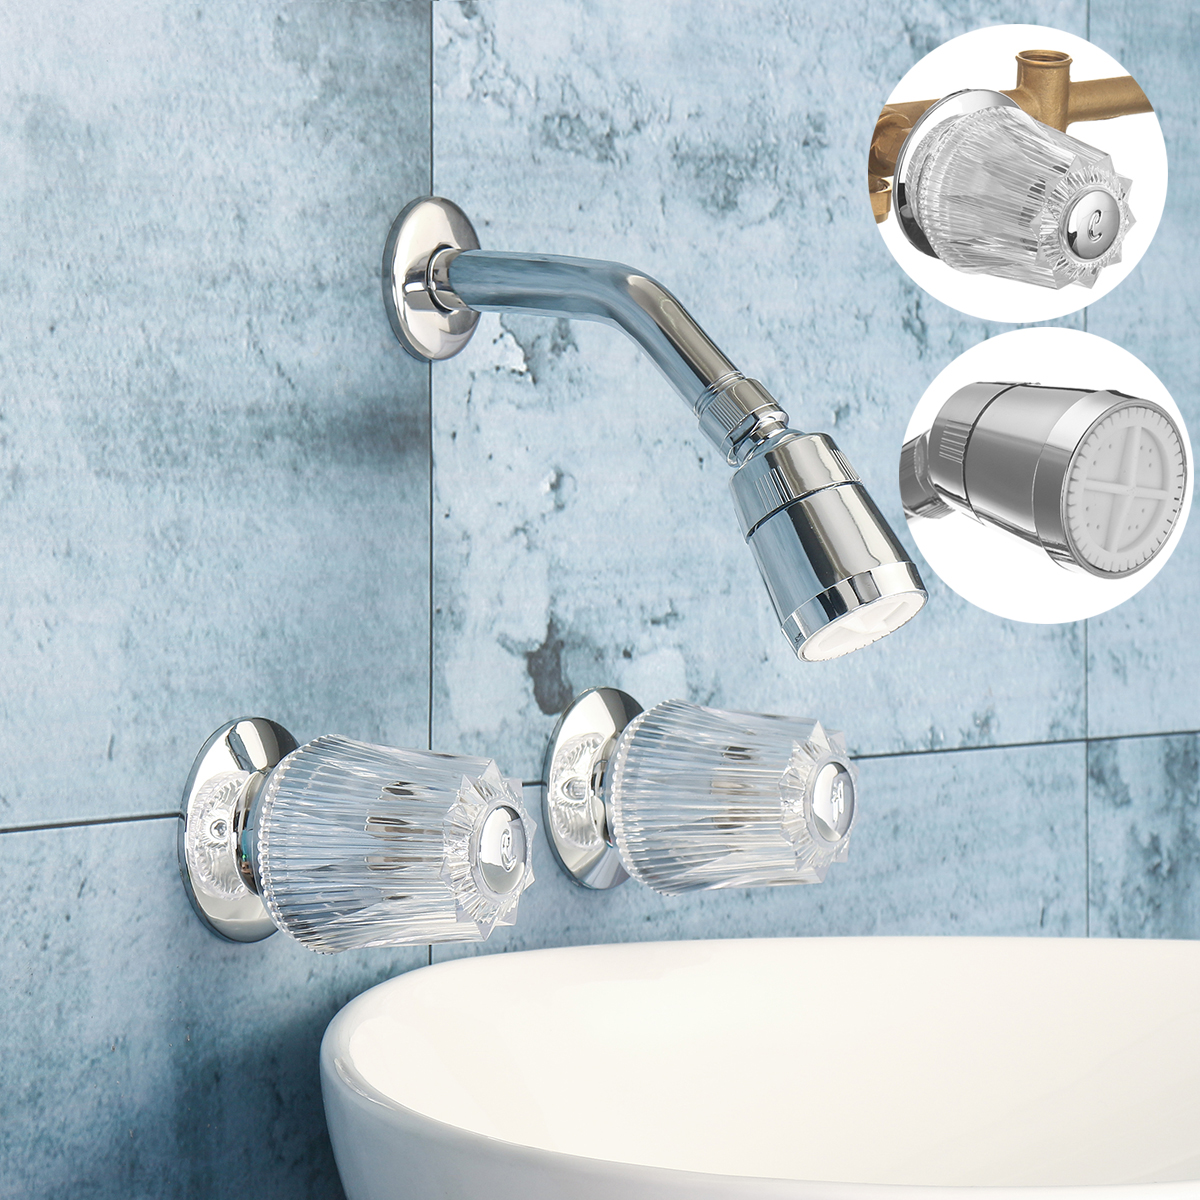 Us 16 24 42 Off Xueqin Brass Double Crystal Handles Bathtub Basin Faucets Shower Faucet Spout Cold And Hot Mixer Tap Wall Mounted In Shower Faucets